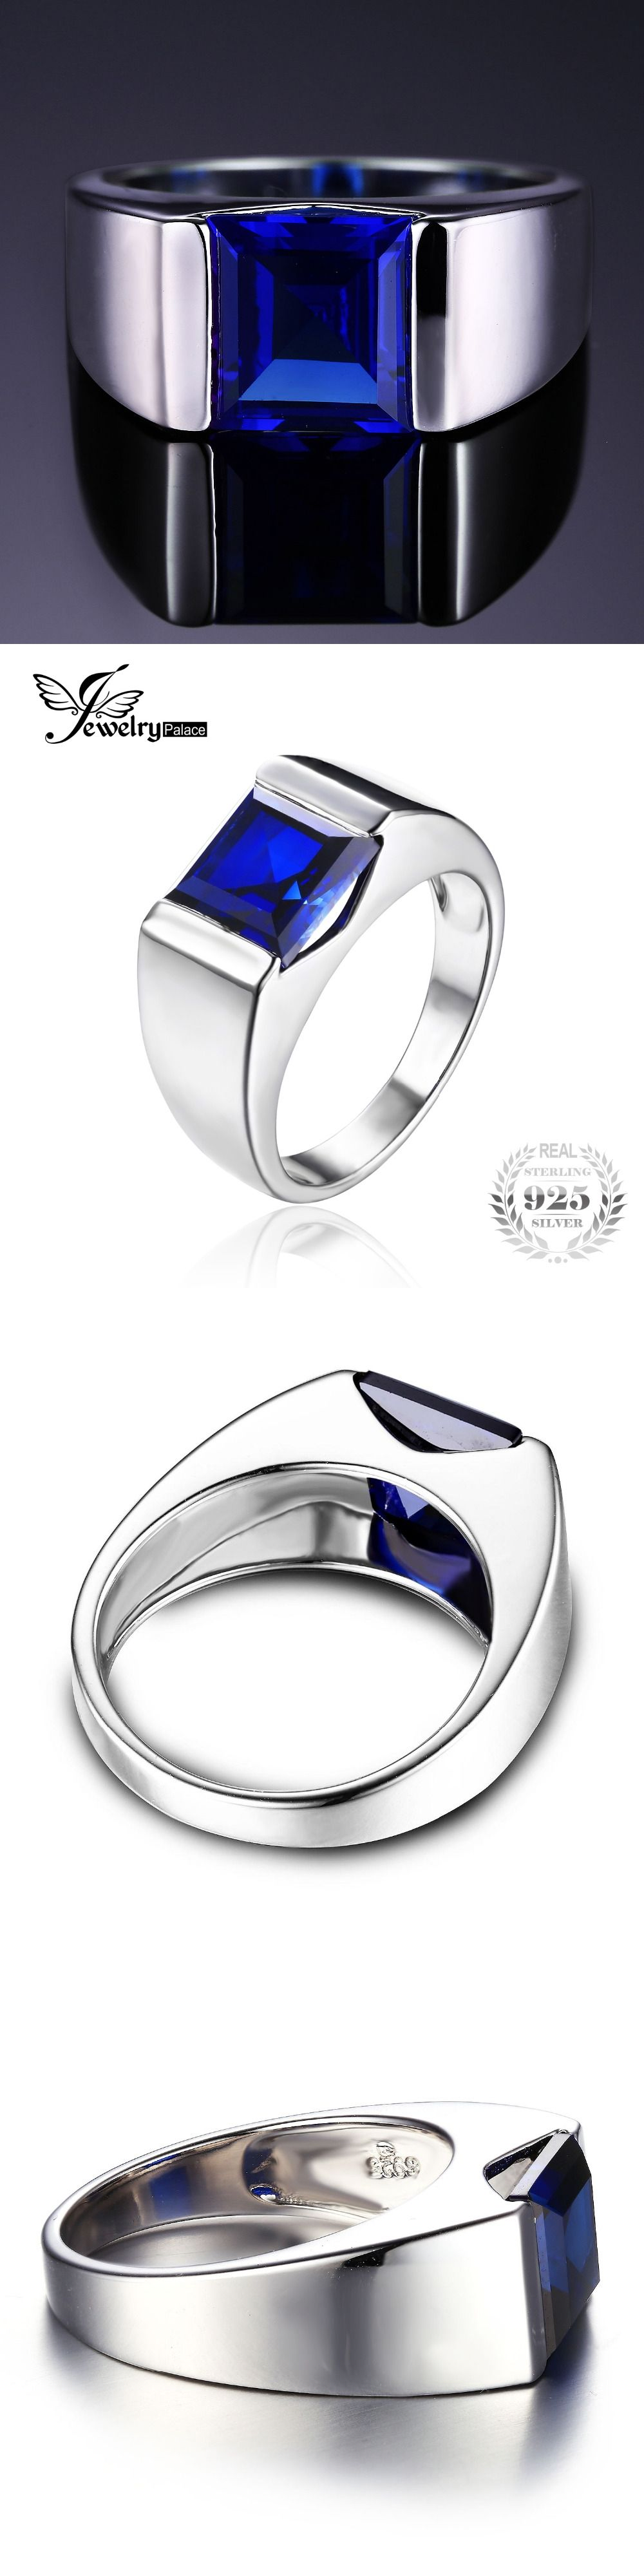 natural amazon sterling sapphire jewelry ring silver available to sizes com letsbuysilver dp real womens cluster blue